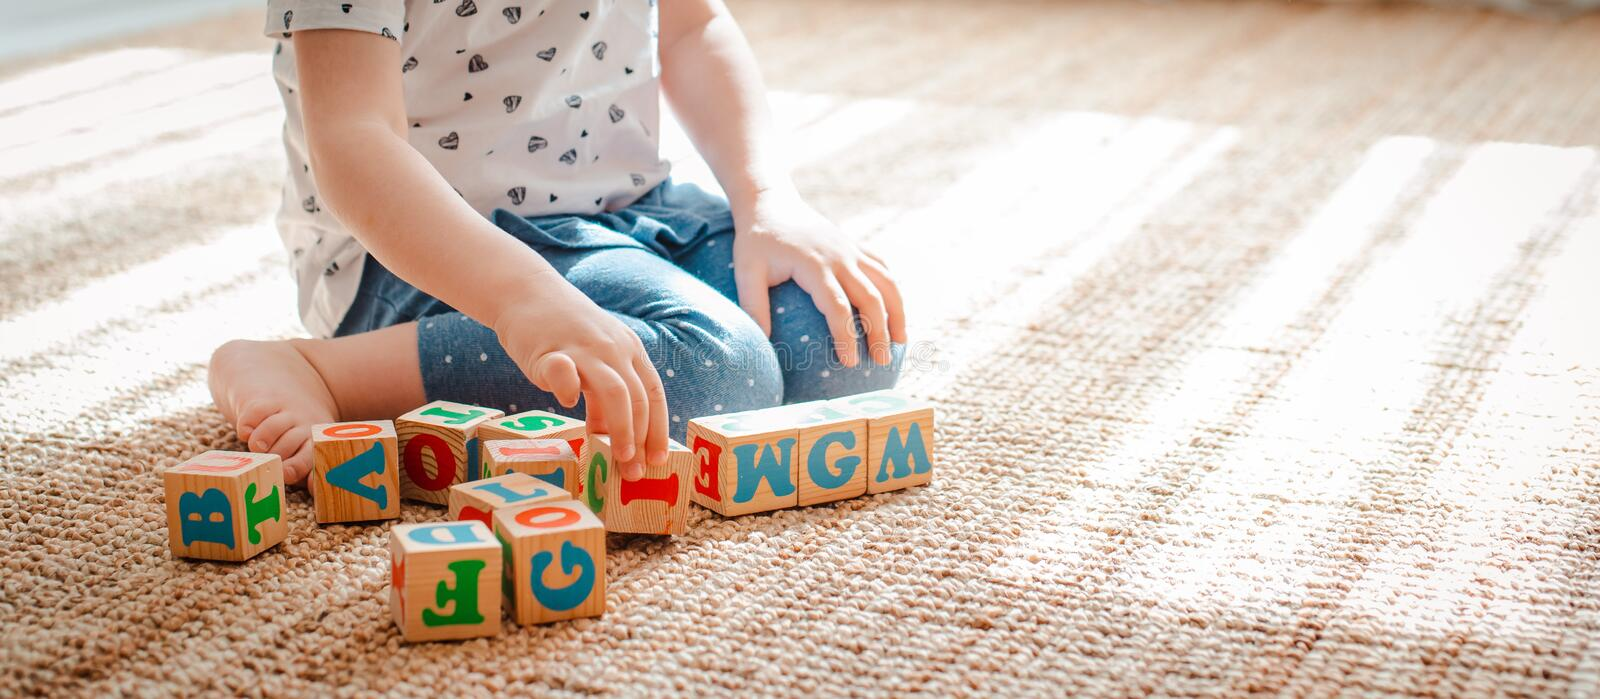 child plays with wooden blocks with letters on the floor in the room a little girl is building a tower at home or in the royalty free stock photos